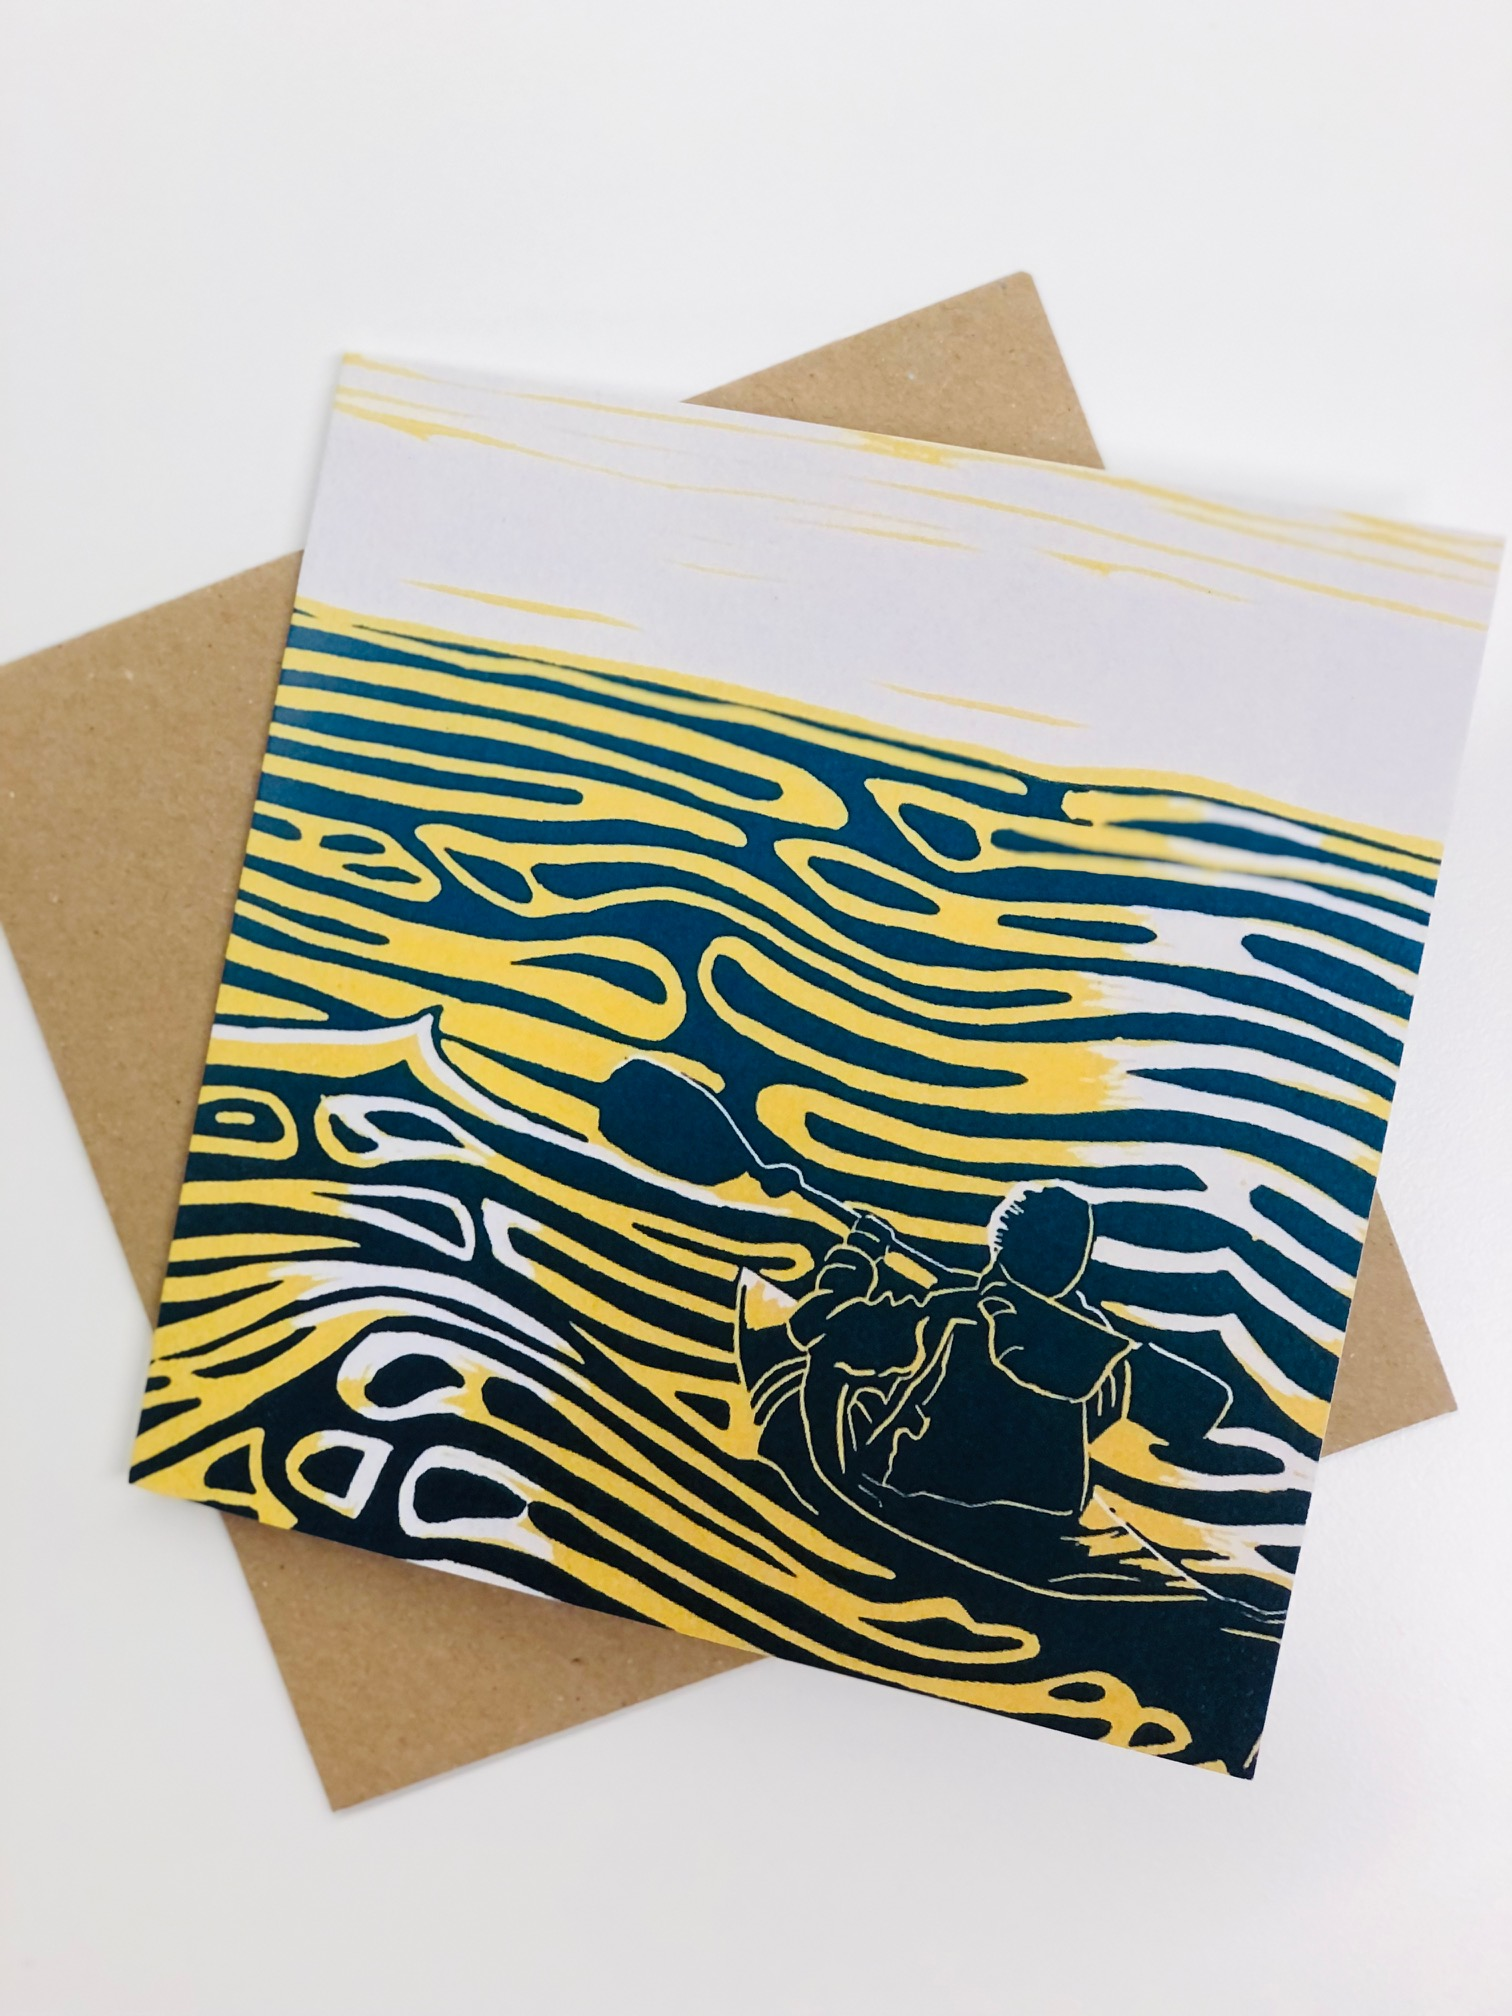 'Social Isolation' Greetings Card by Aysla Williams